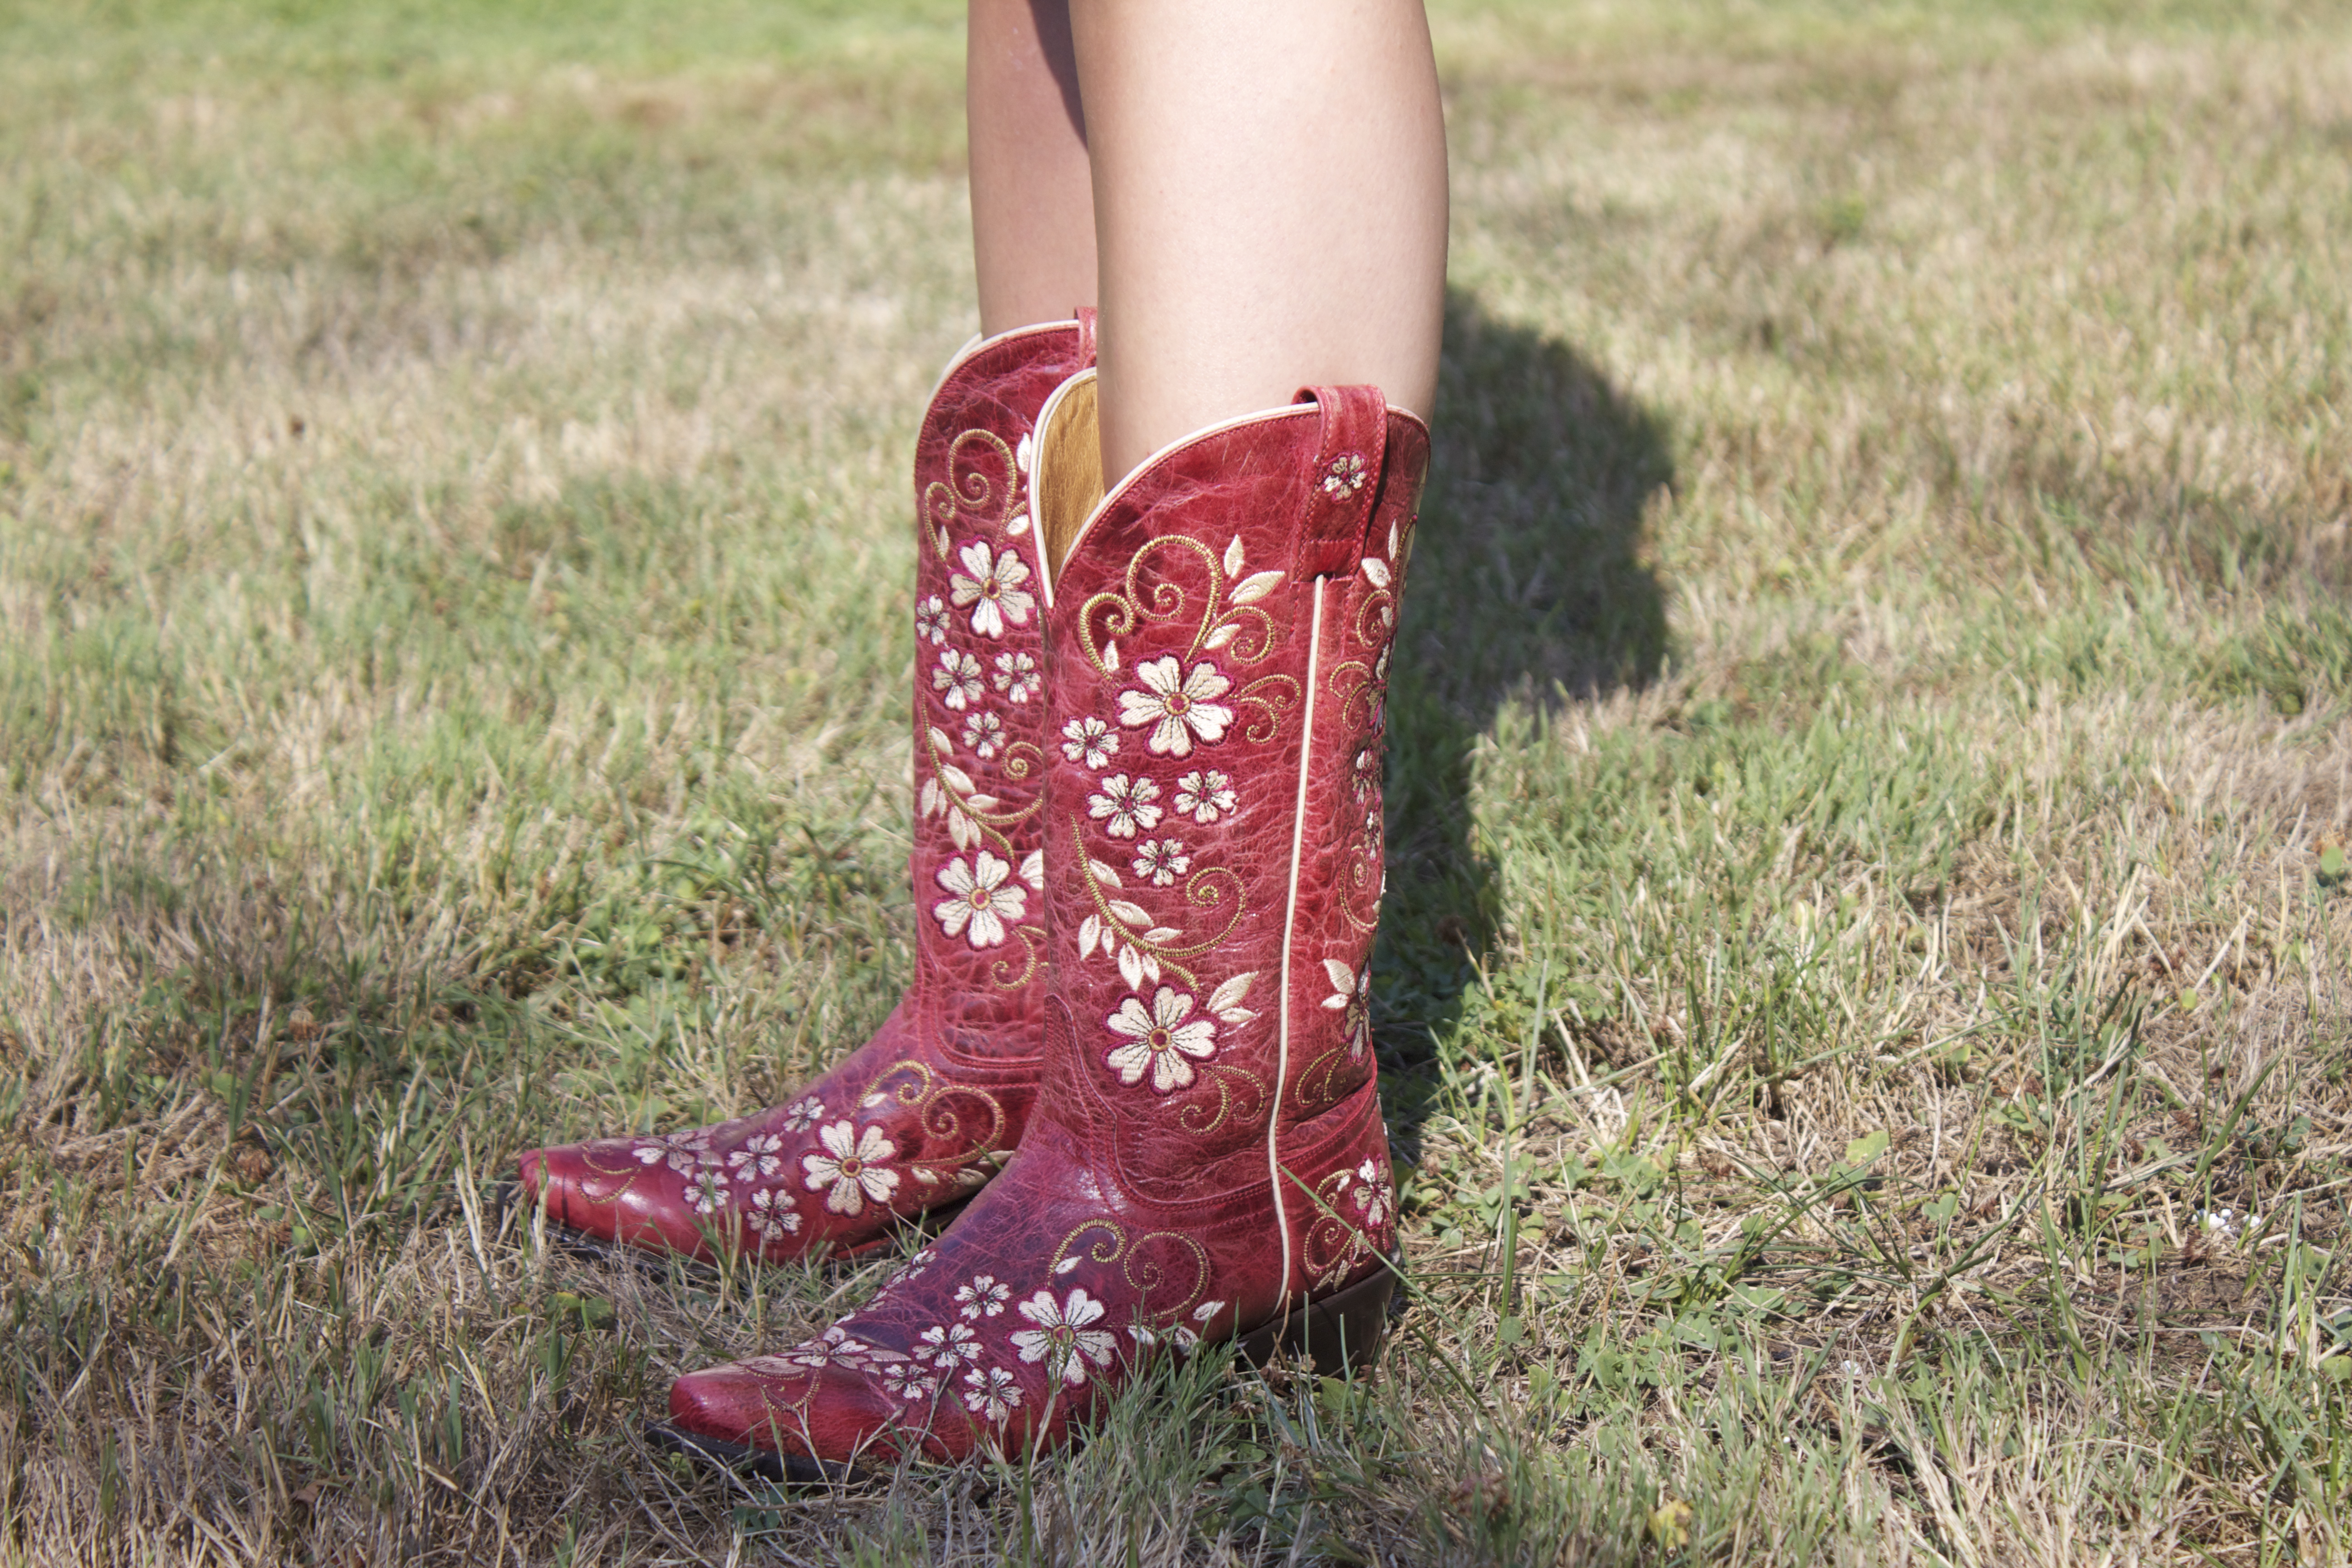 Shyanne Cowboy Boots from the Boot Barn